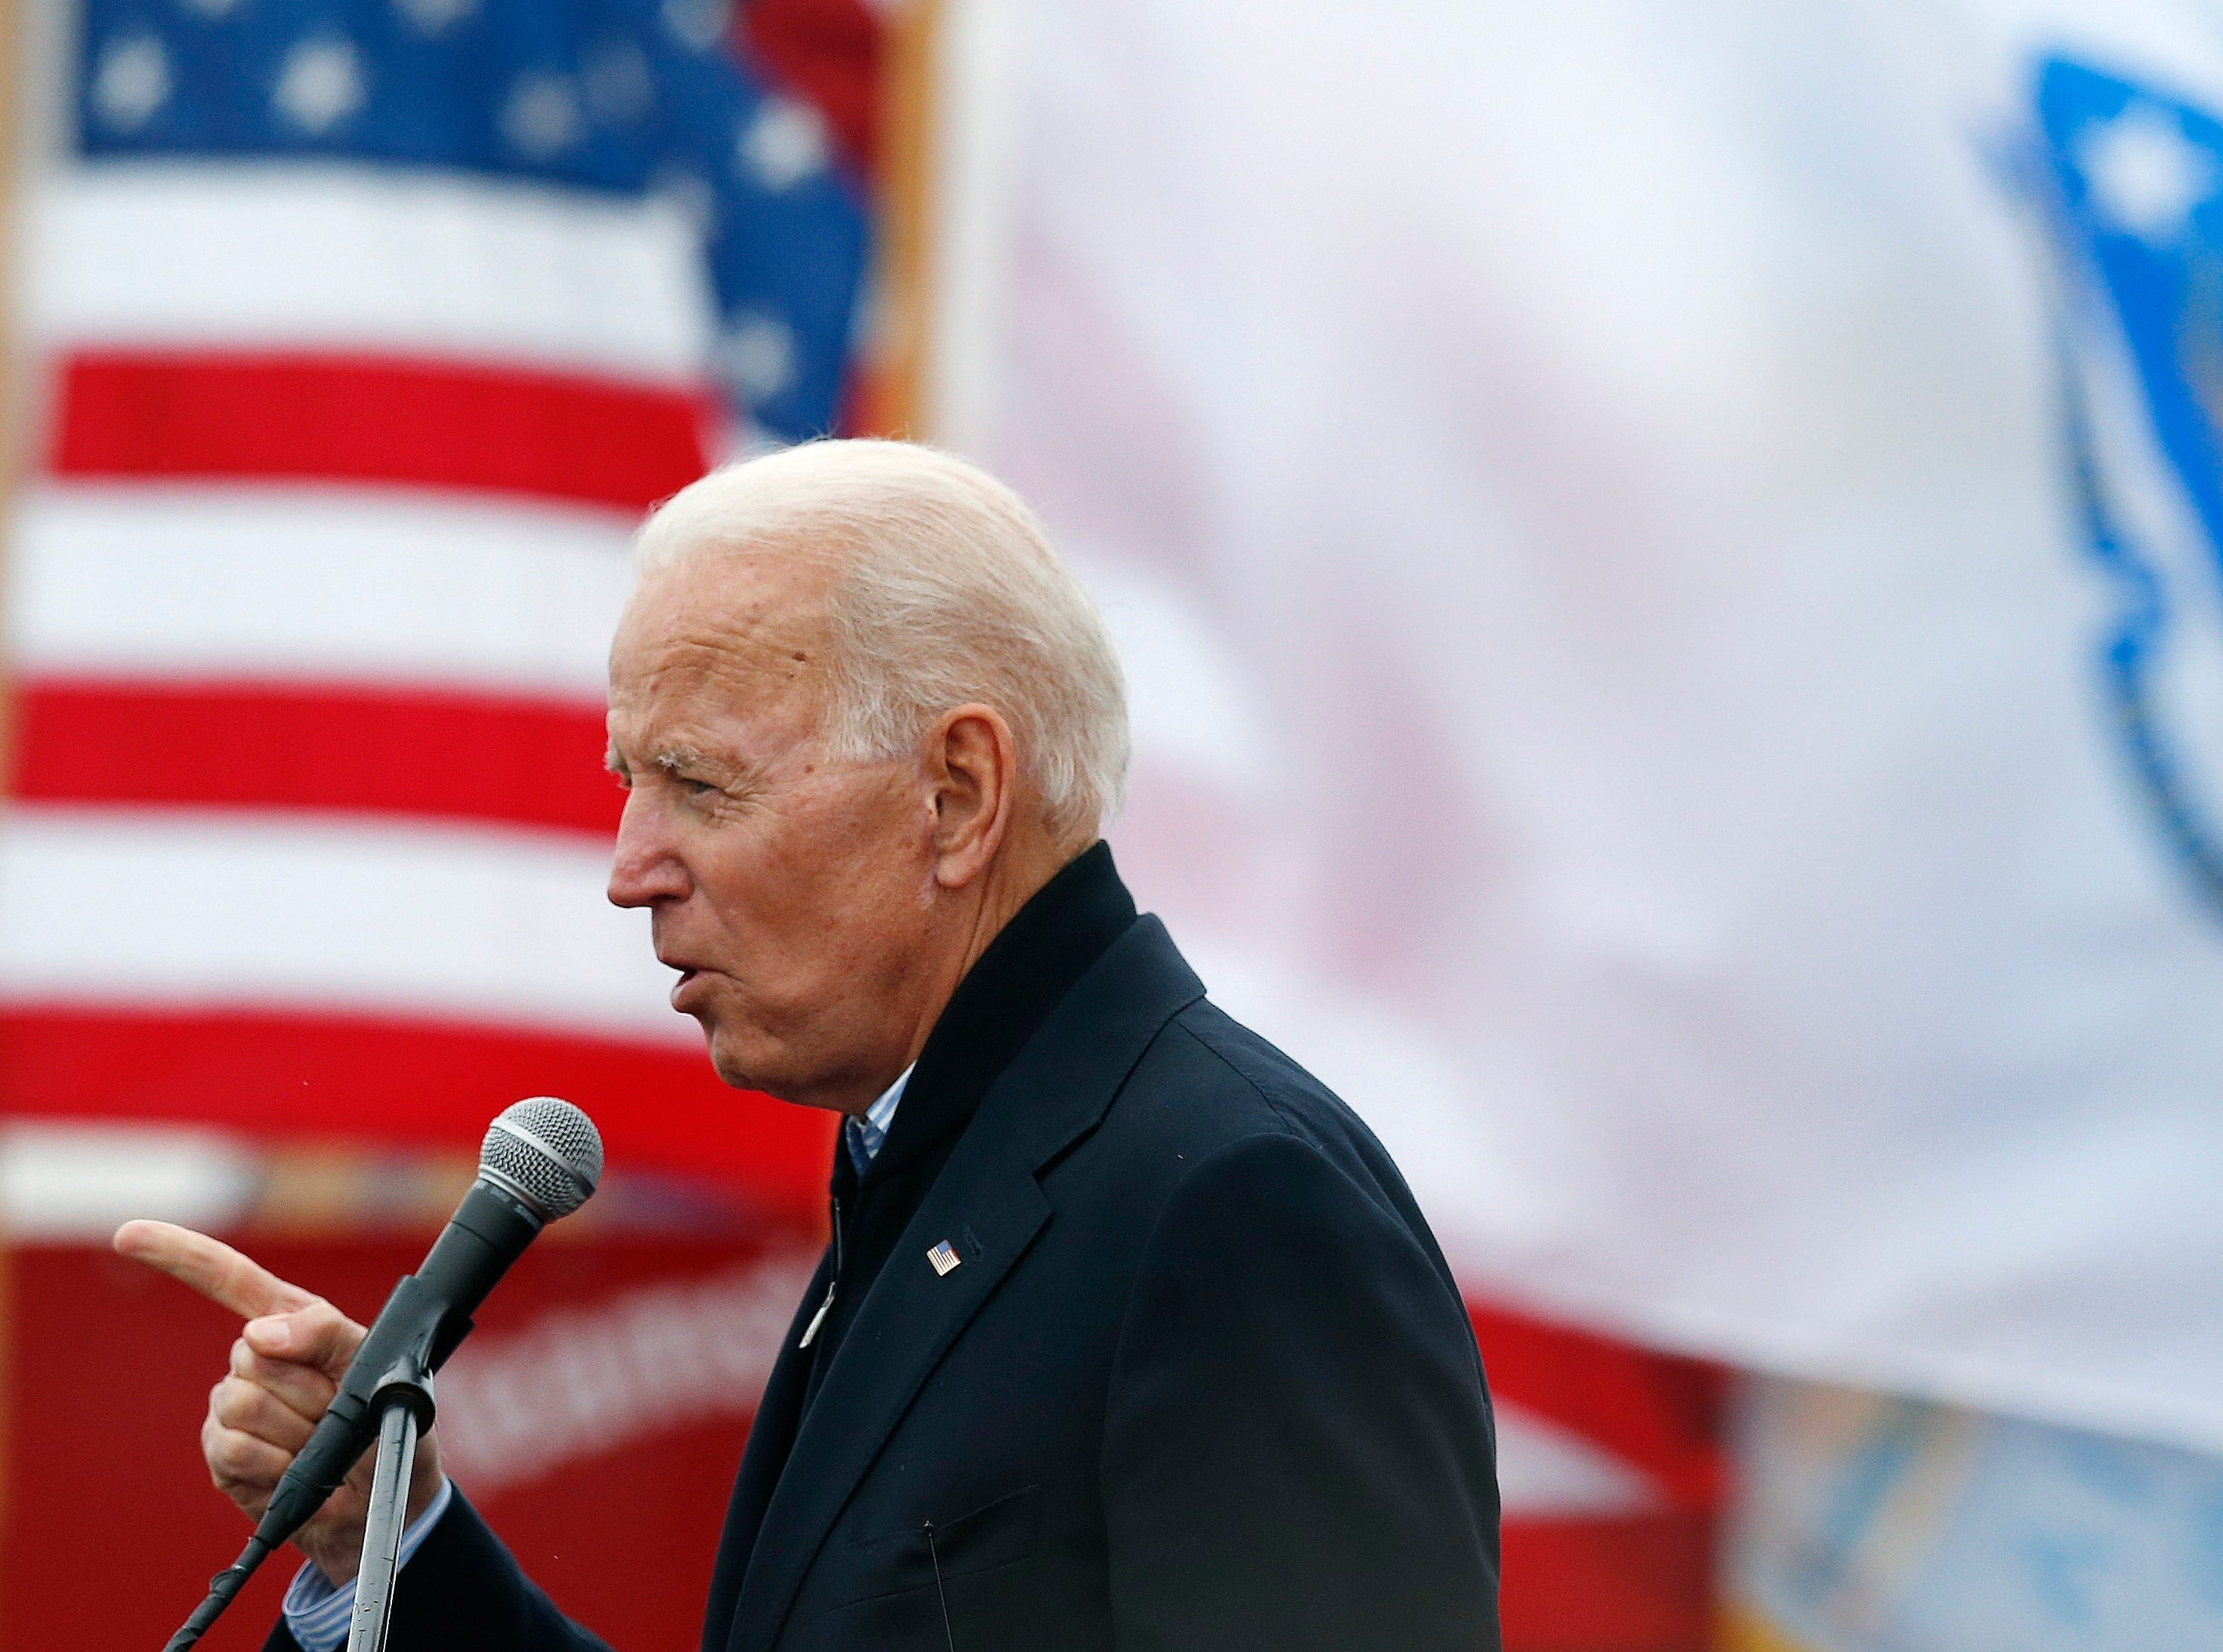 How will Joe Biden fare in Iowa? Vice presidents have had mixed success in the Iowa caucuses.